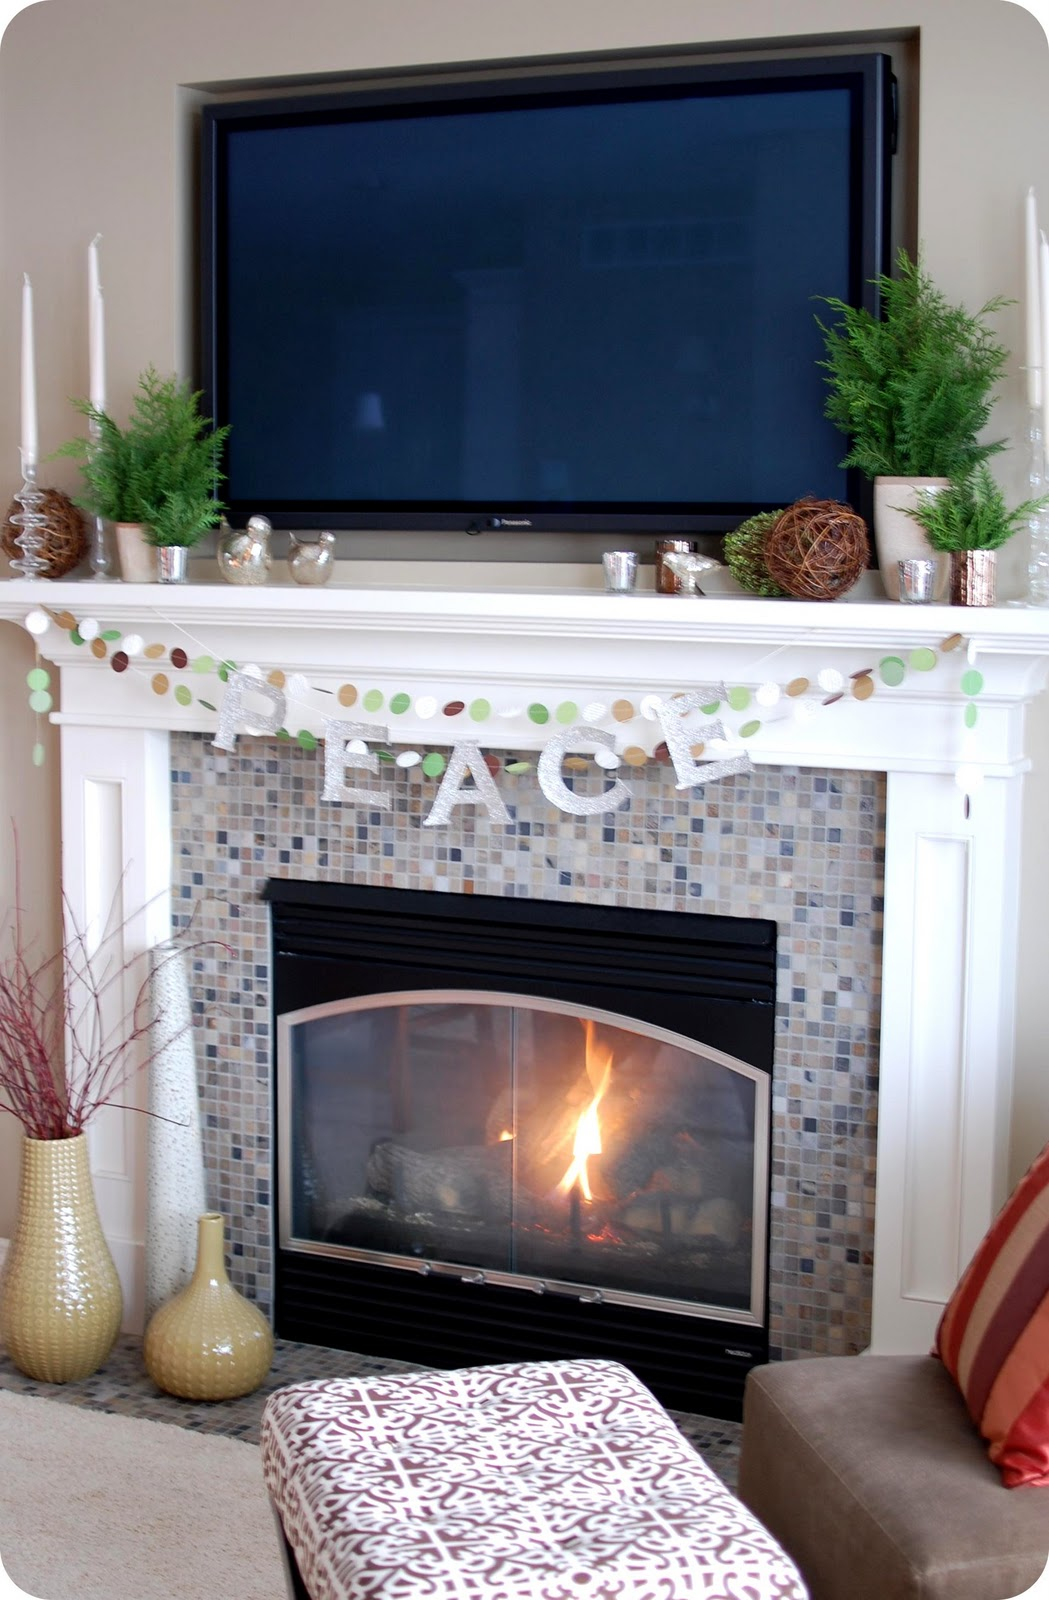 Tv Above Fireplace Decorating Ideas 33 Shades Of Green Decorating Around The Tv